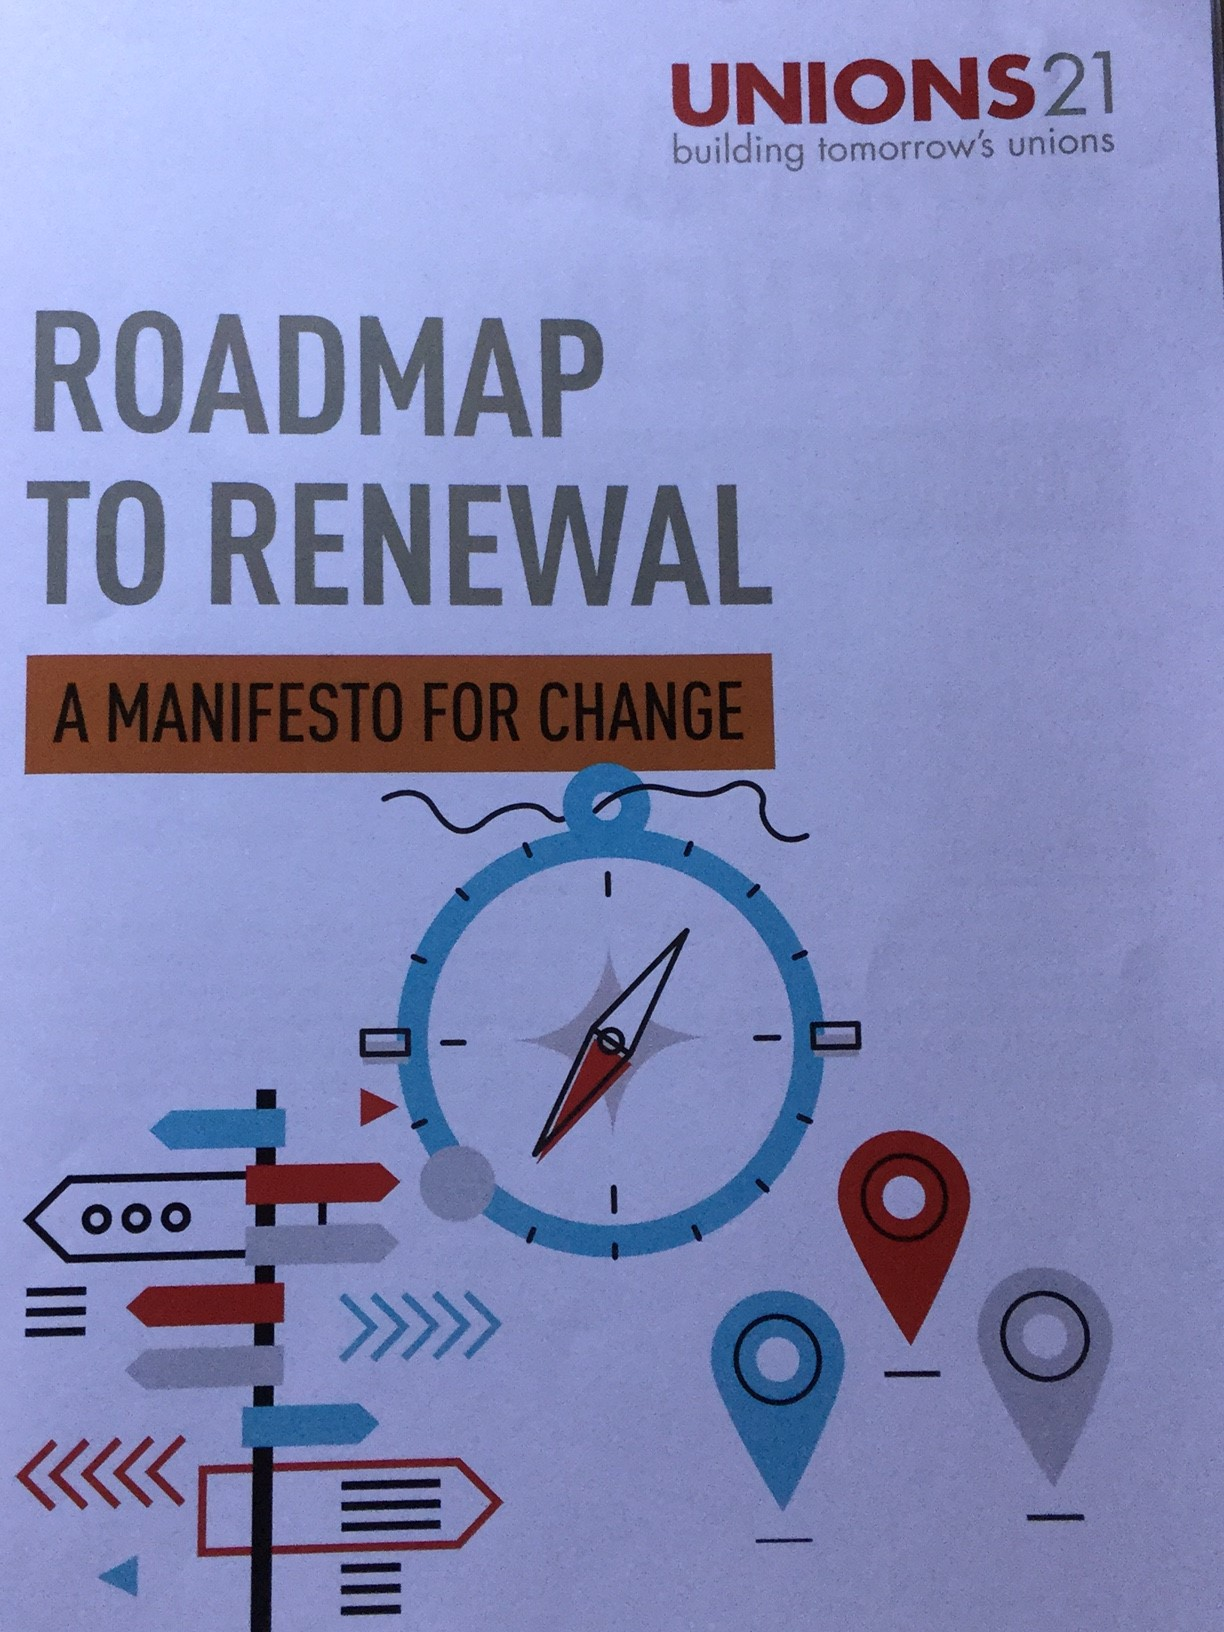 Roadmap To Trade Union Renewal